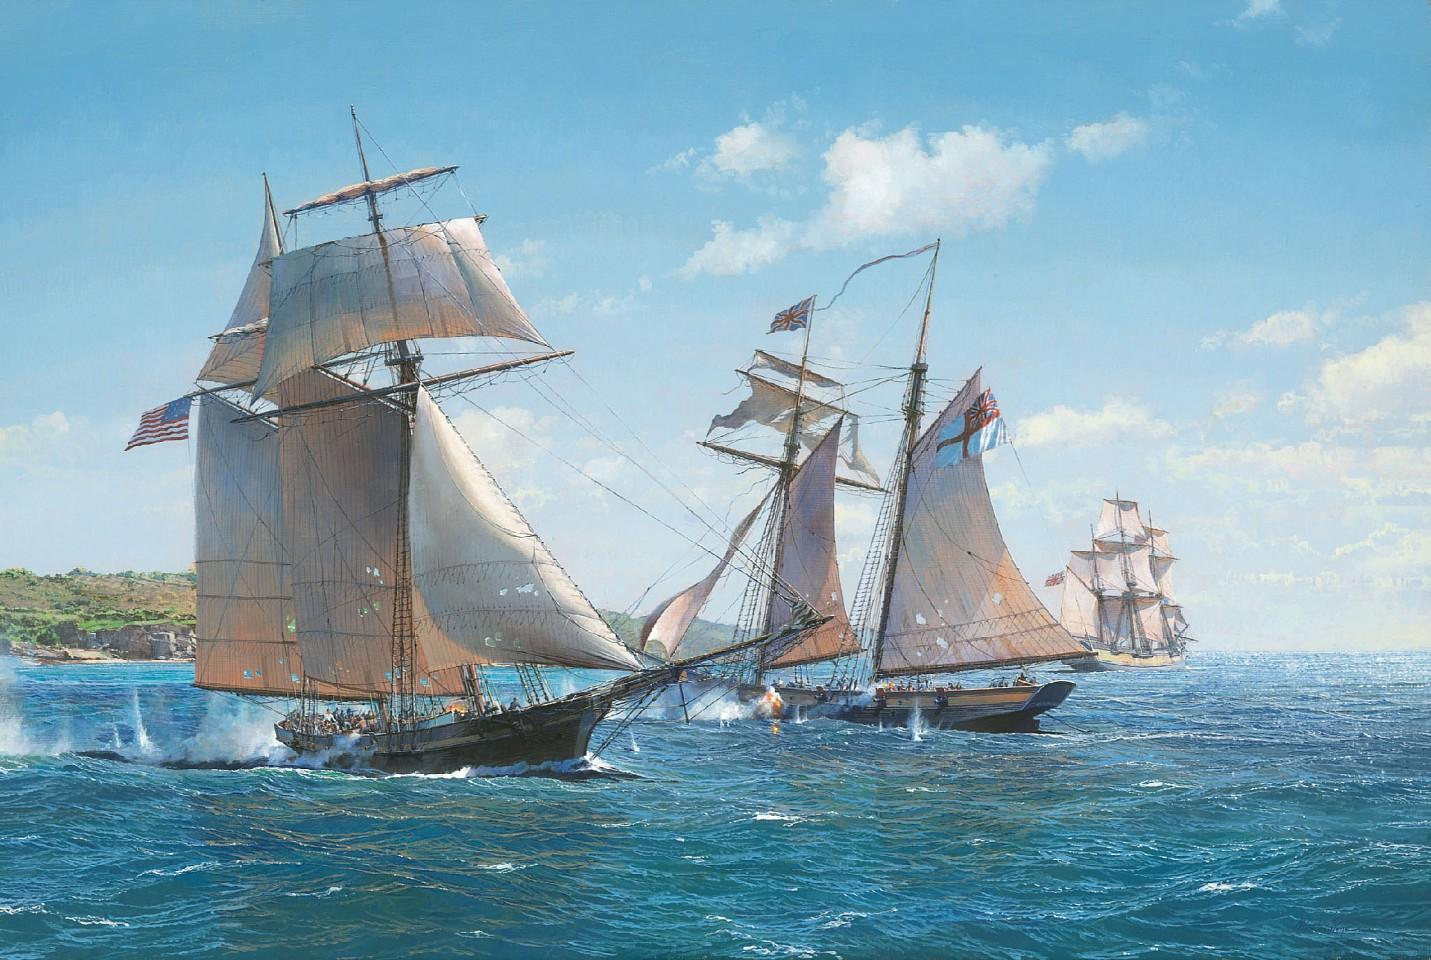 Maarten Platje,  Victory at Bermuda, the Capture of the HMS  Dominica  by American Privateer  Decatur, 2018. Oil on linen.